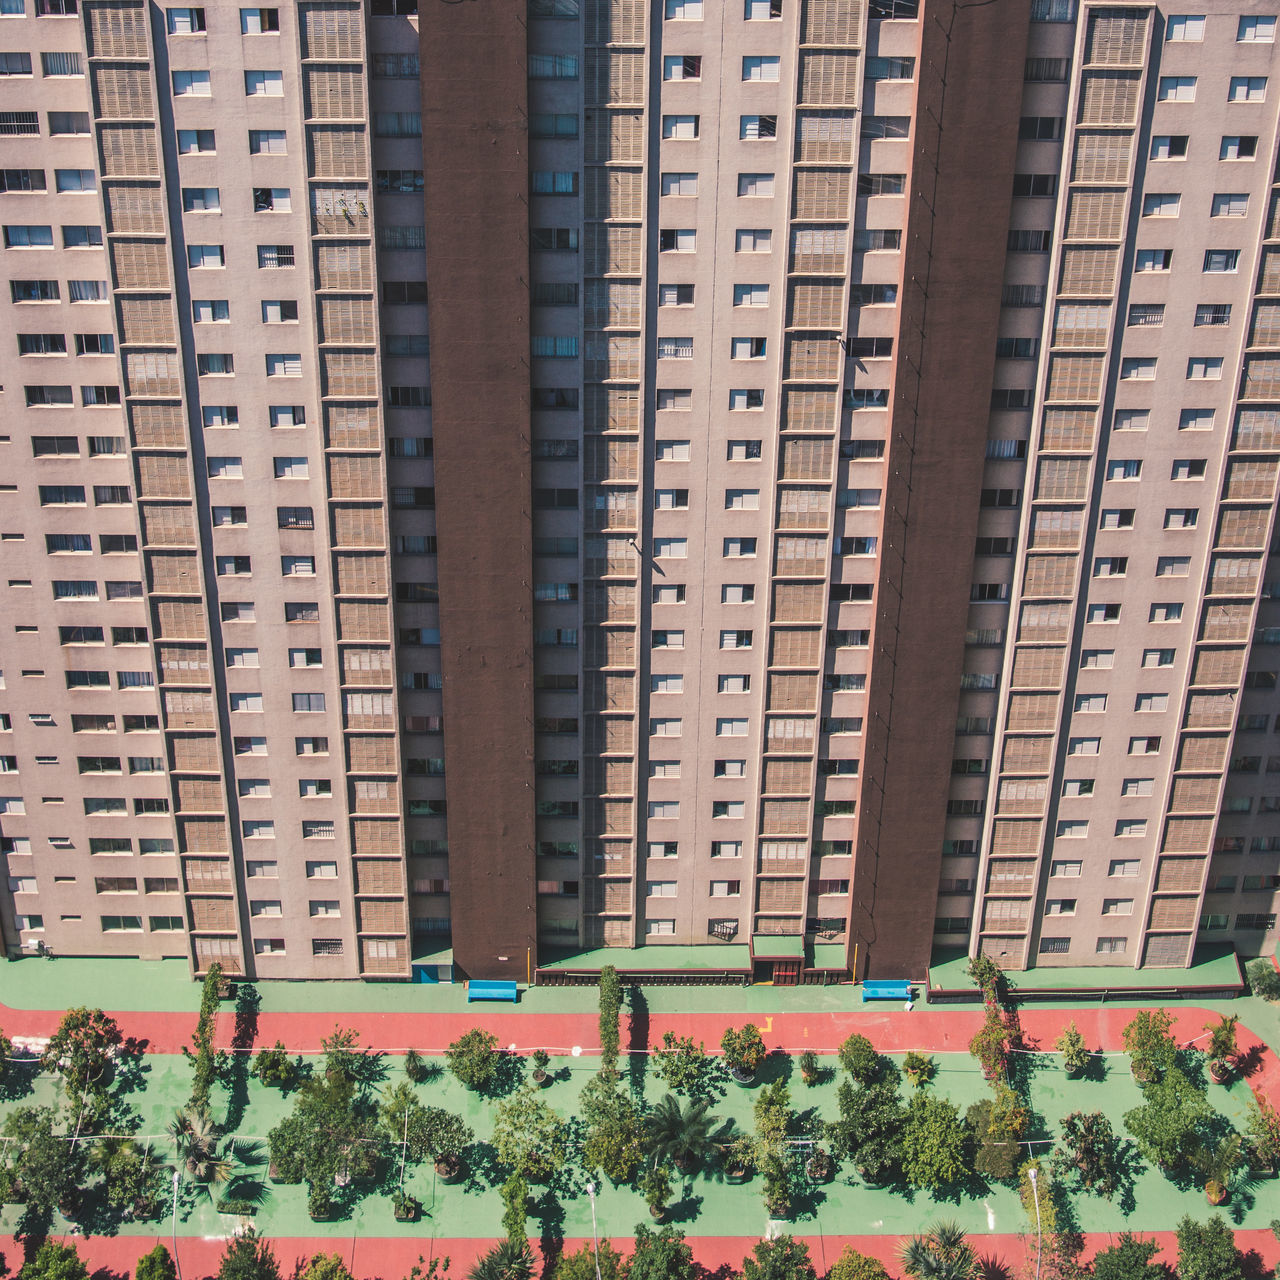 Picture taken from the top of Edificio Copan. Apartment Architecture Block Building Exterior Built Structure City Close-up Condo Day Flower Growth Minimalism Nature No People Outdoors Park Pattern Plant Repetition Simplicity Skyscraper Skyscrapers The Architect - 2017 EyeEm Awards Tree Windows